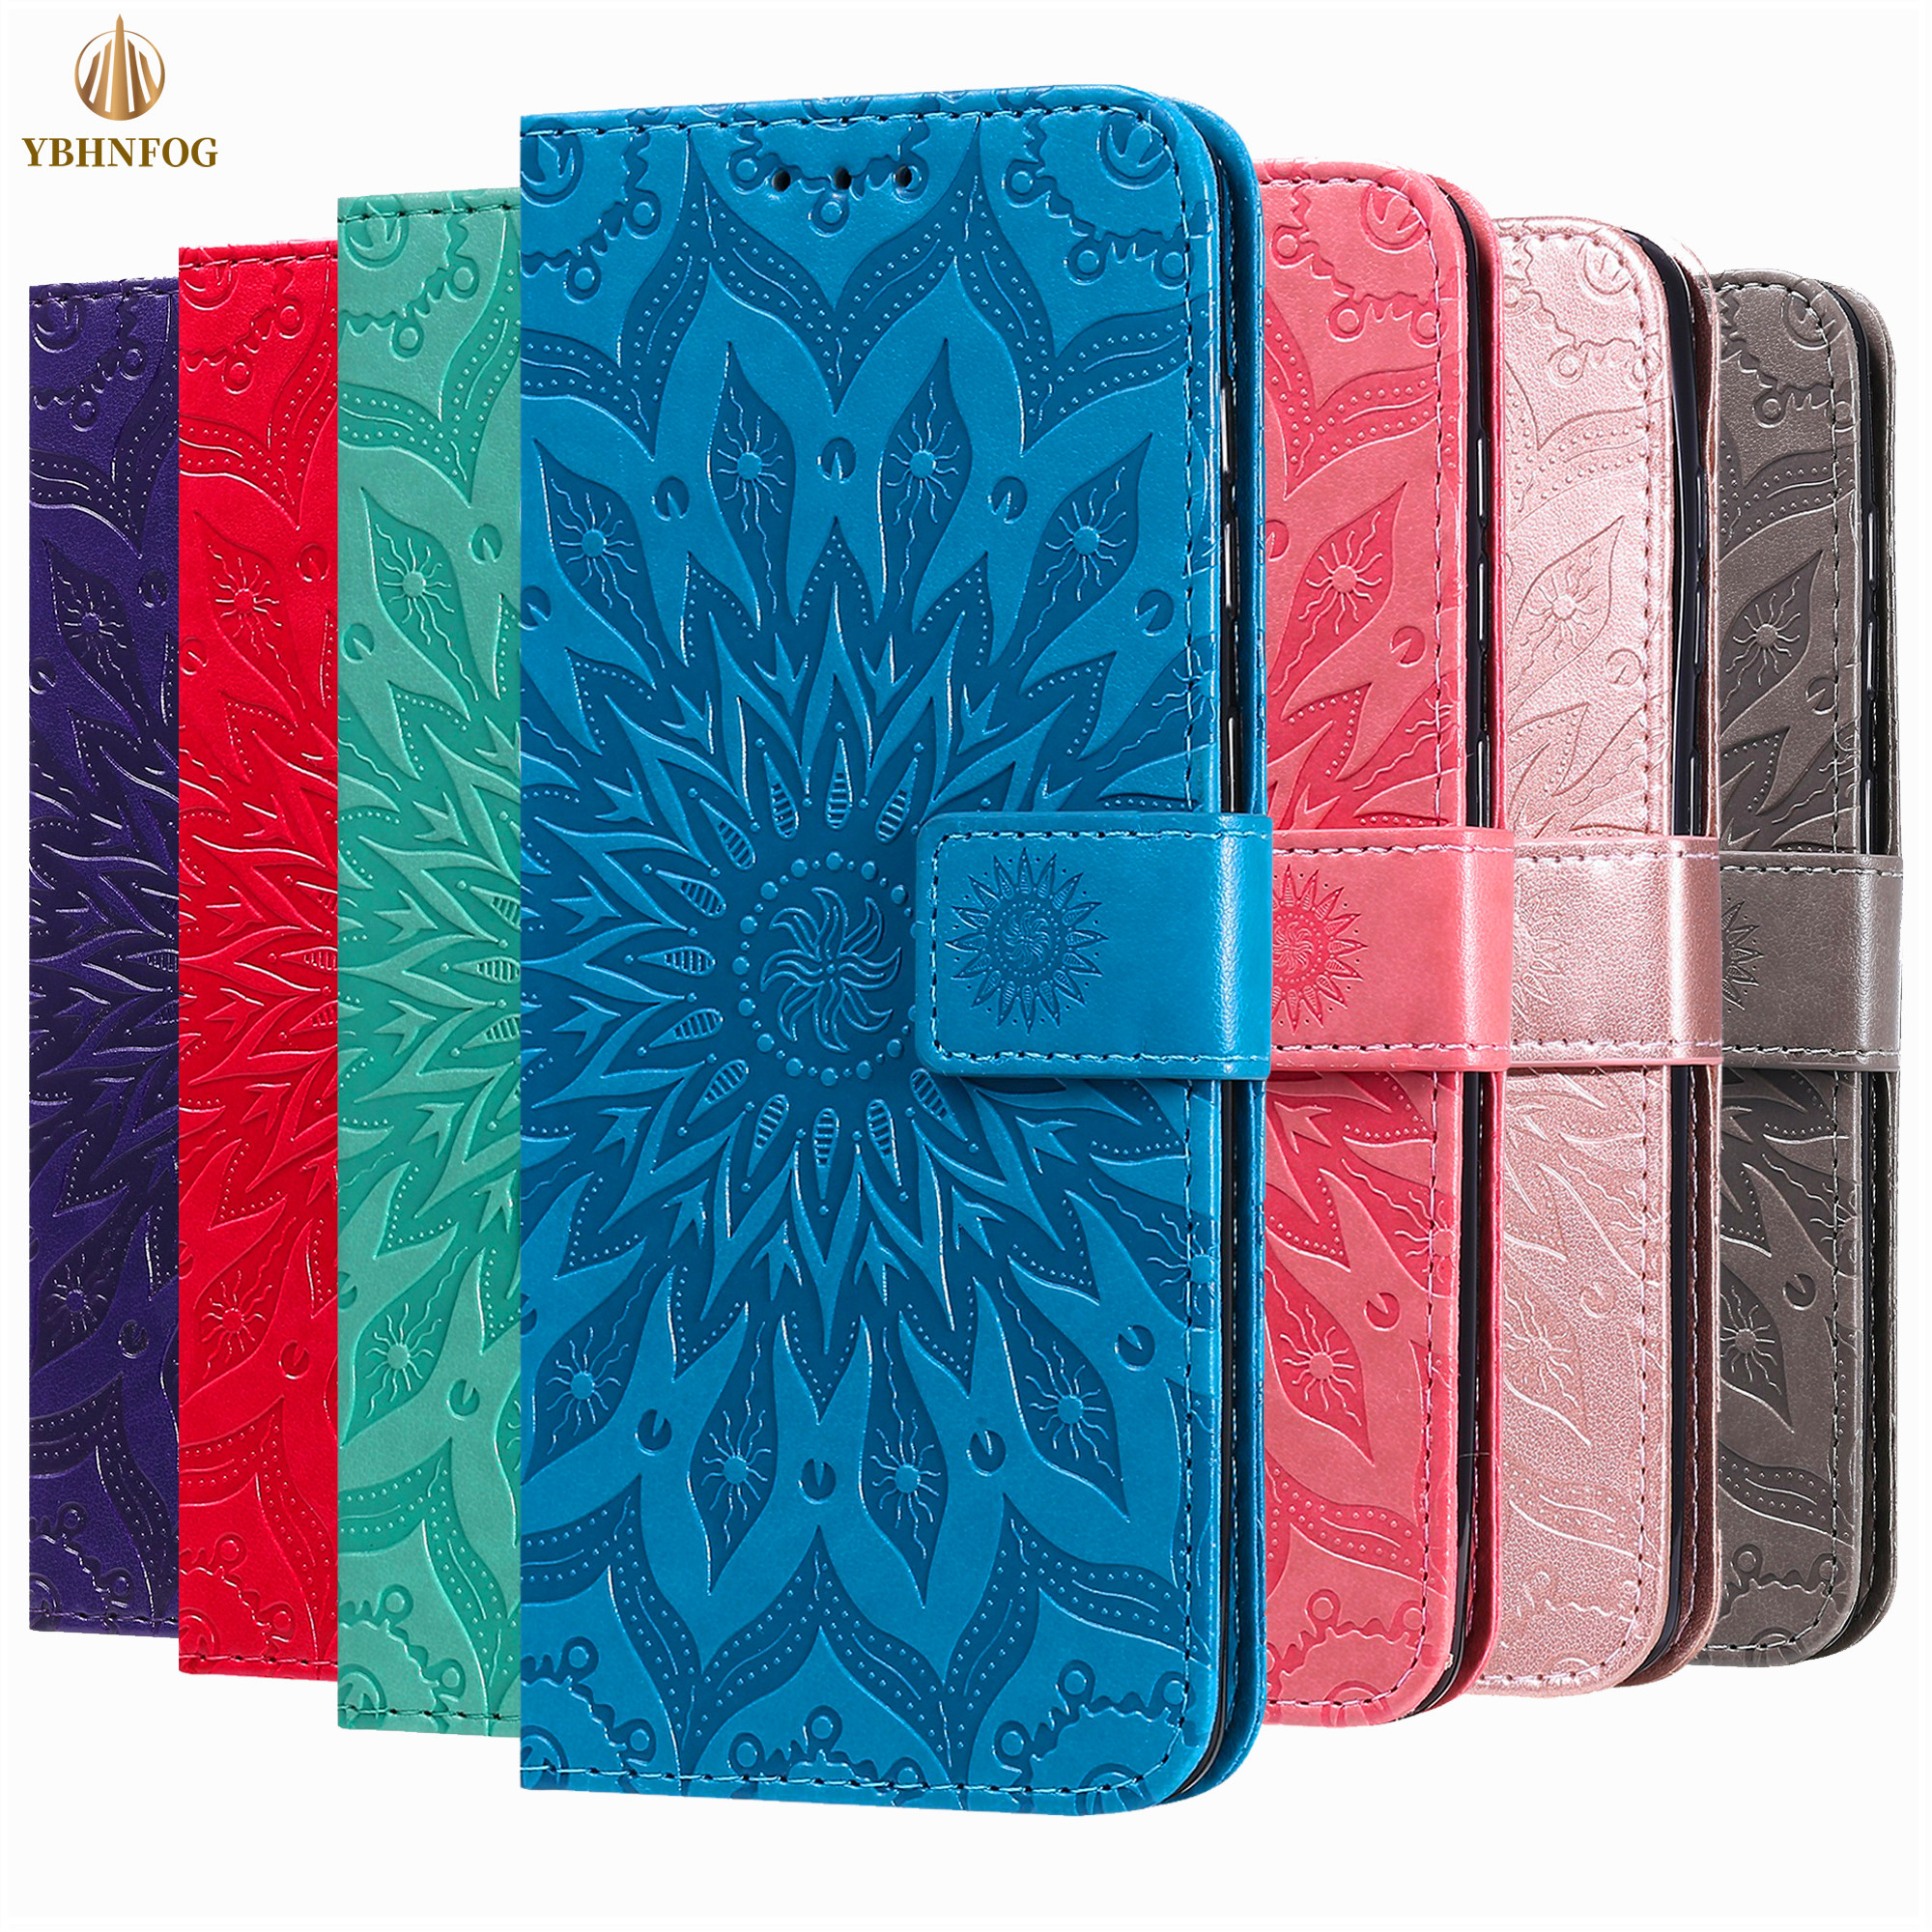 Embossing <font><b>Flip</b></font> <font><b>Leather</b></font> <font><b>Case</b></font> For <font><b>Samsung</b></font> A10 A20E A30 A40 <font><b>A50S</b></font> A70 A01 A11 A21S A31 A41 A51 A71 A81 <font><b>Wallet</b></font> Cover Holder <font><b>Stand</b></font> Bag image